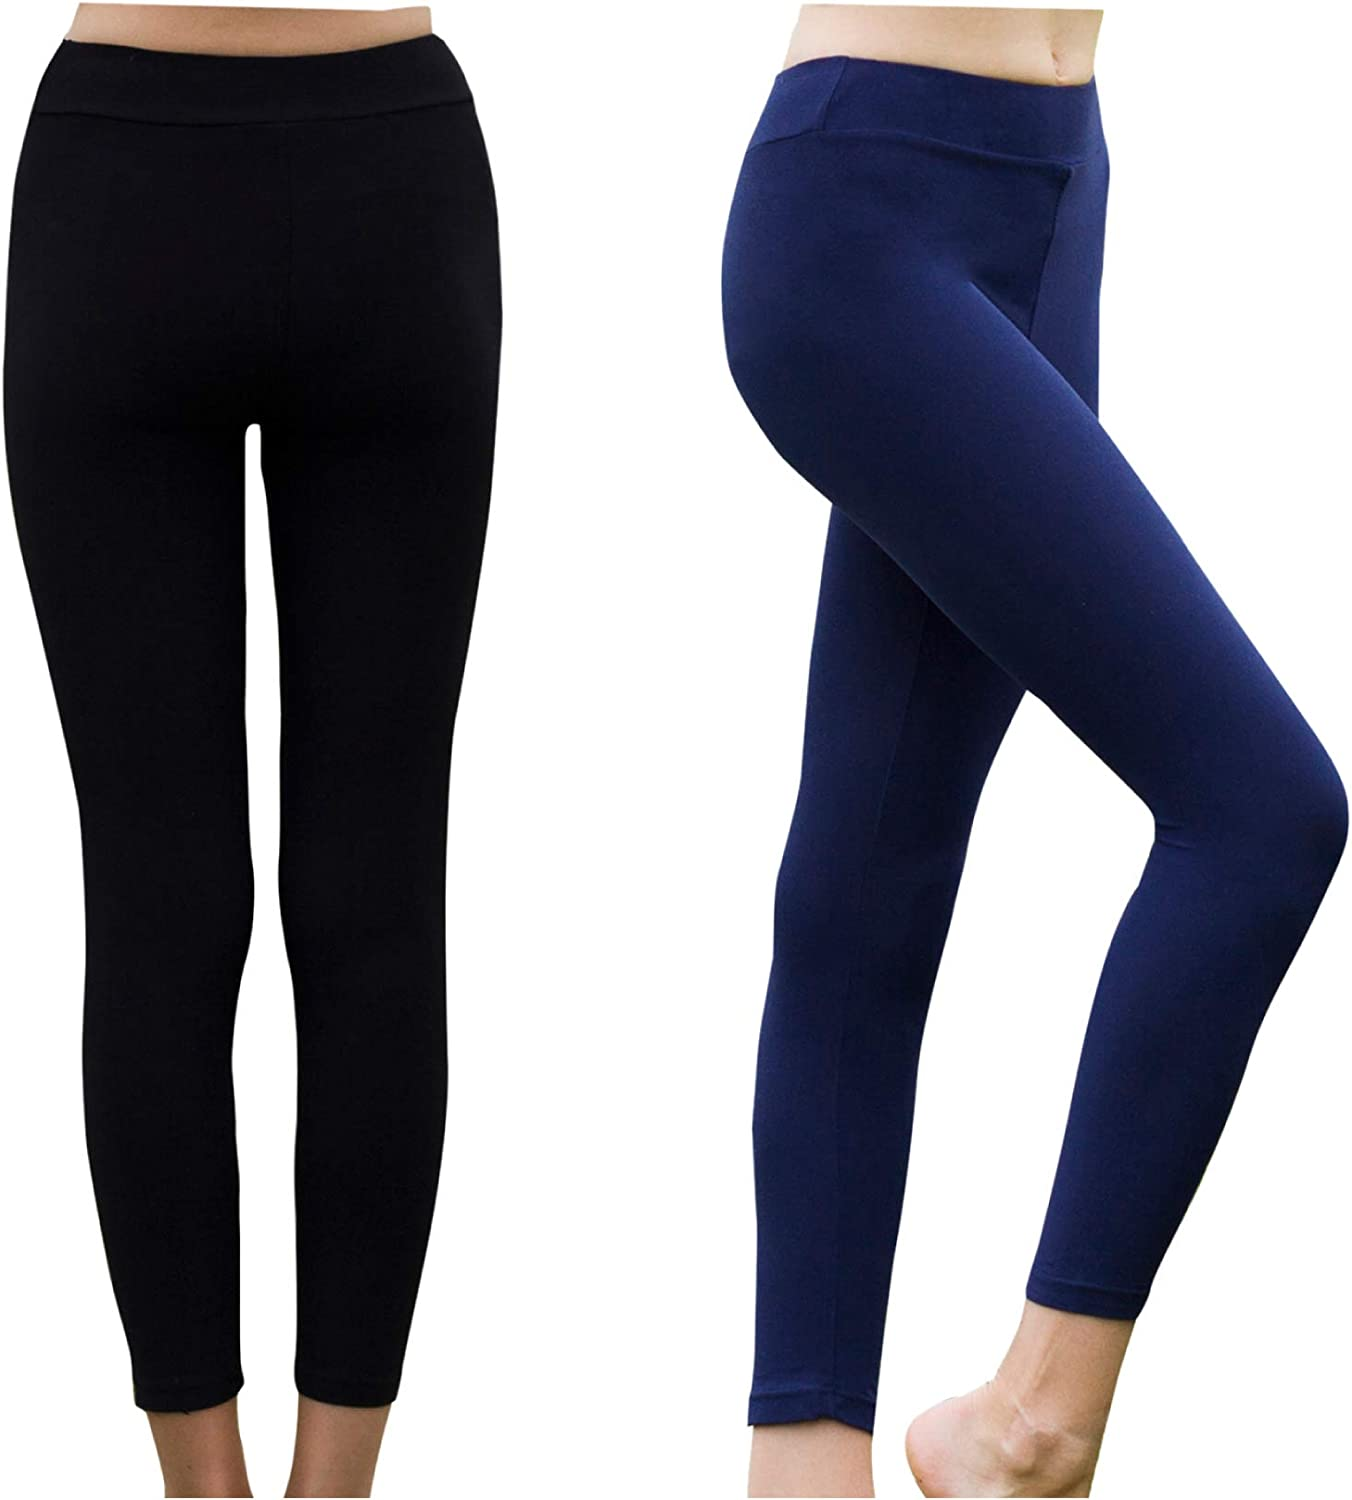 Pack of 2 Stretchy High Waist Ankle Length Soft Pants for Kids and Toddlers VESKAOTY Girls/' Leggings